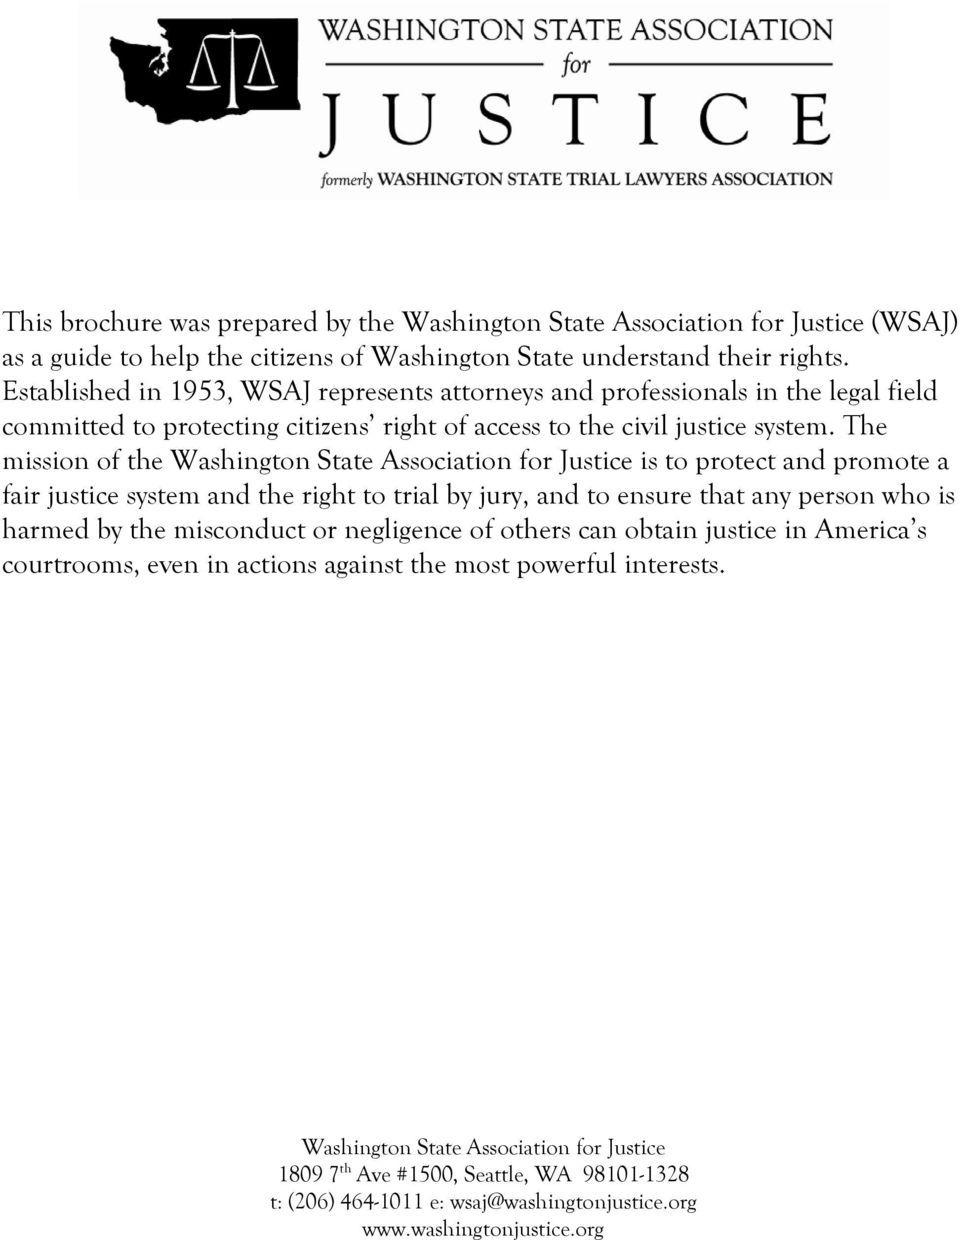 The mission of the Washington State Association for Justice is to protect and promote a fair justice system and the right to trial by jury, and to ensure that any person who is harmed by the